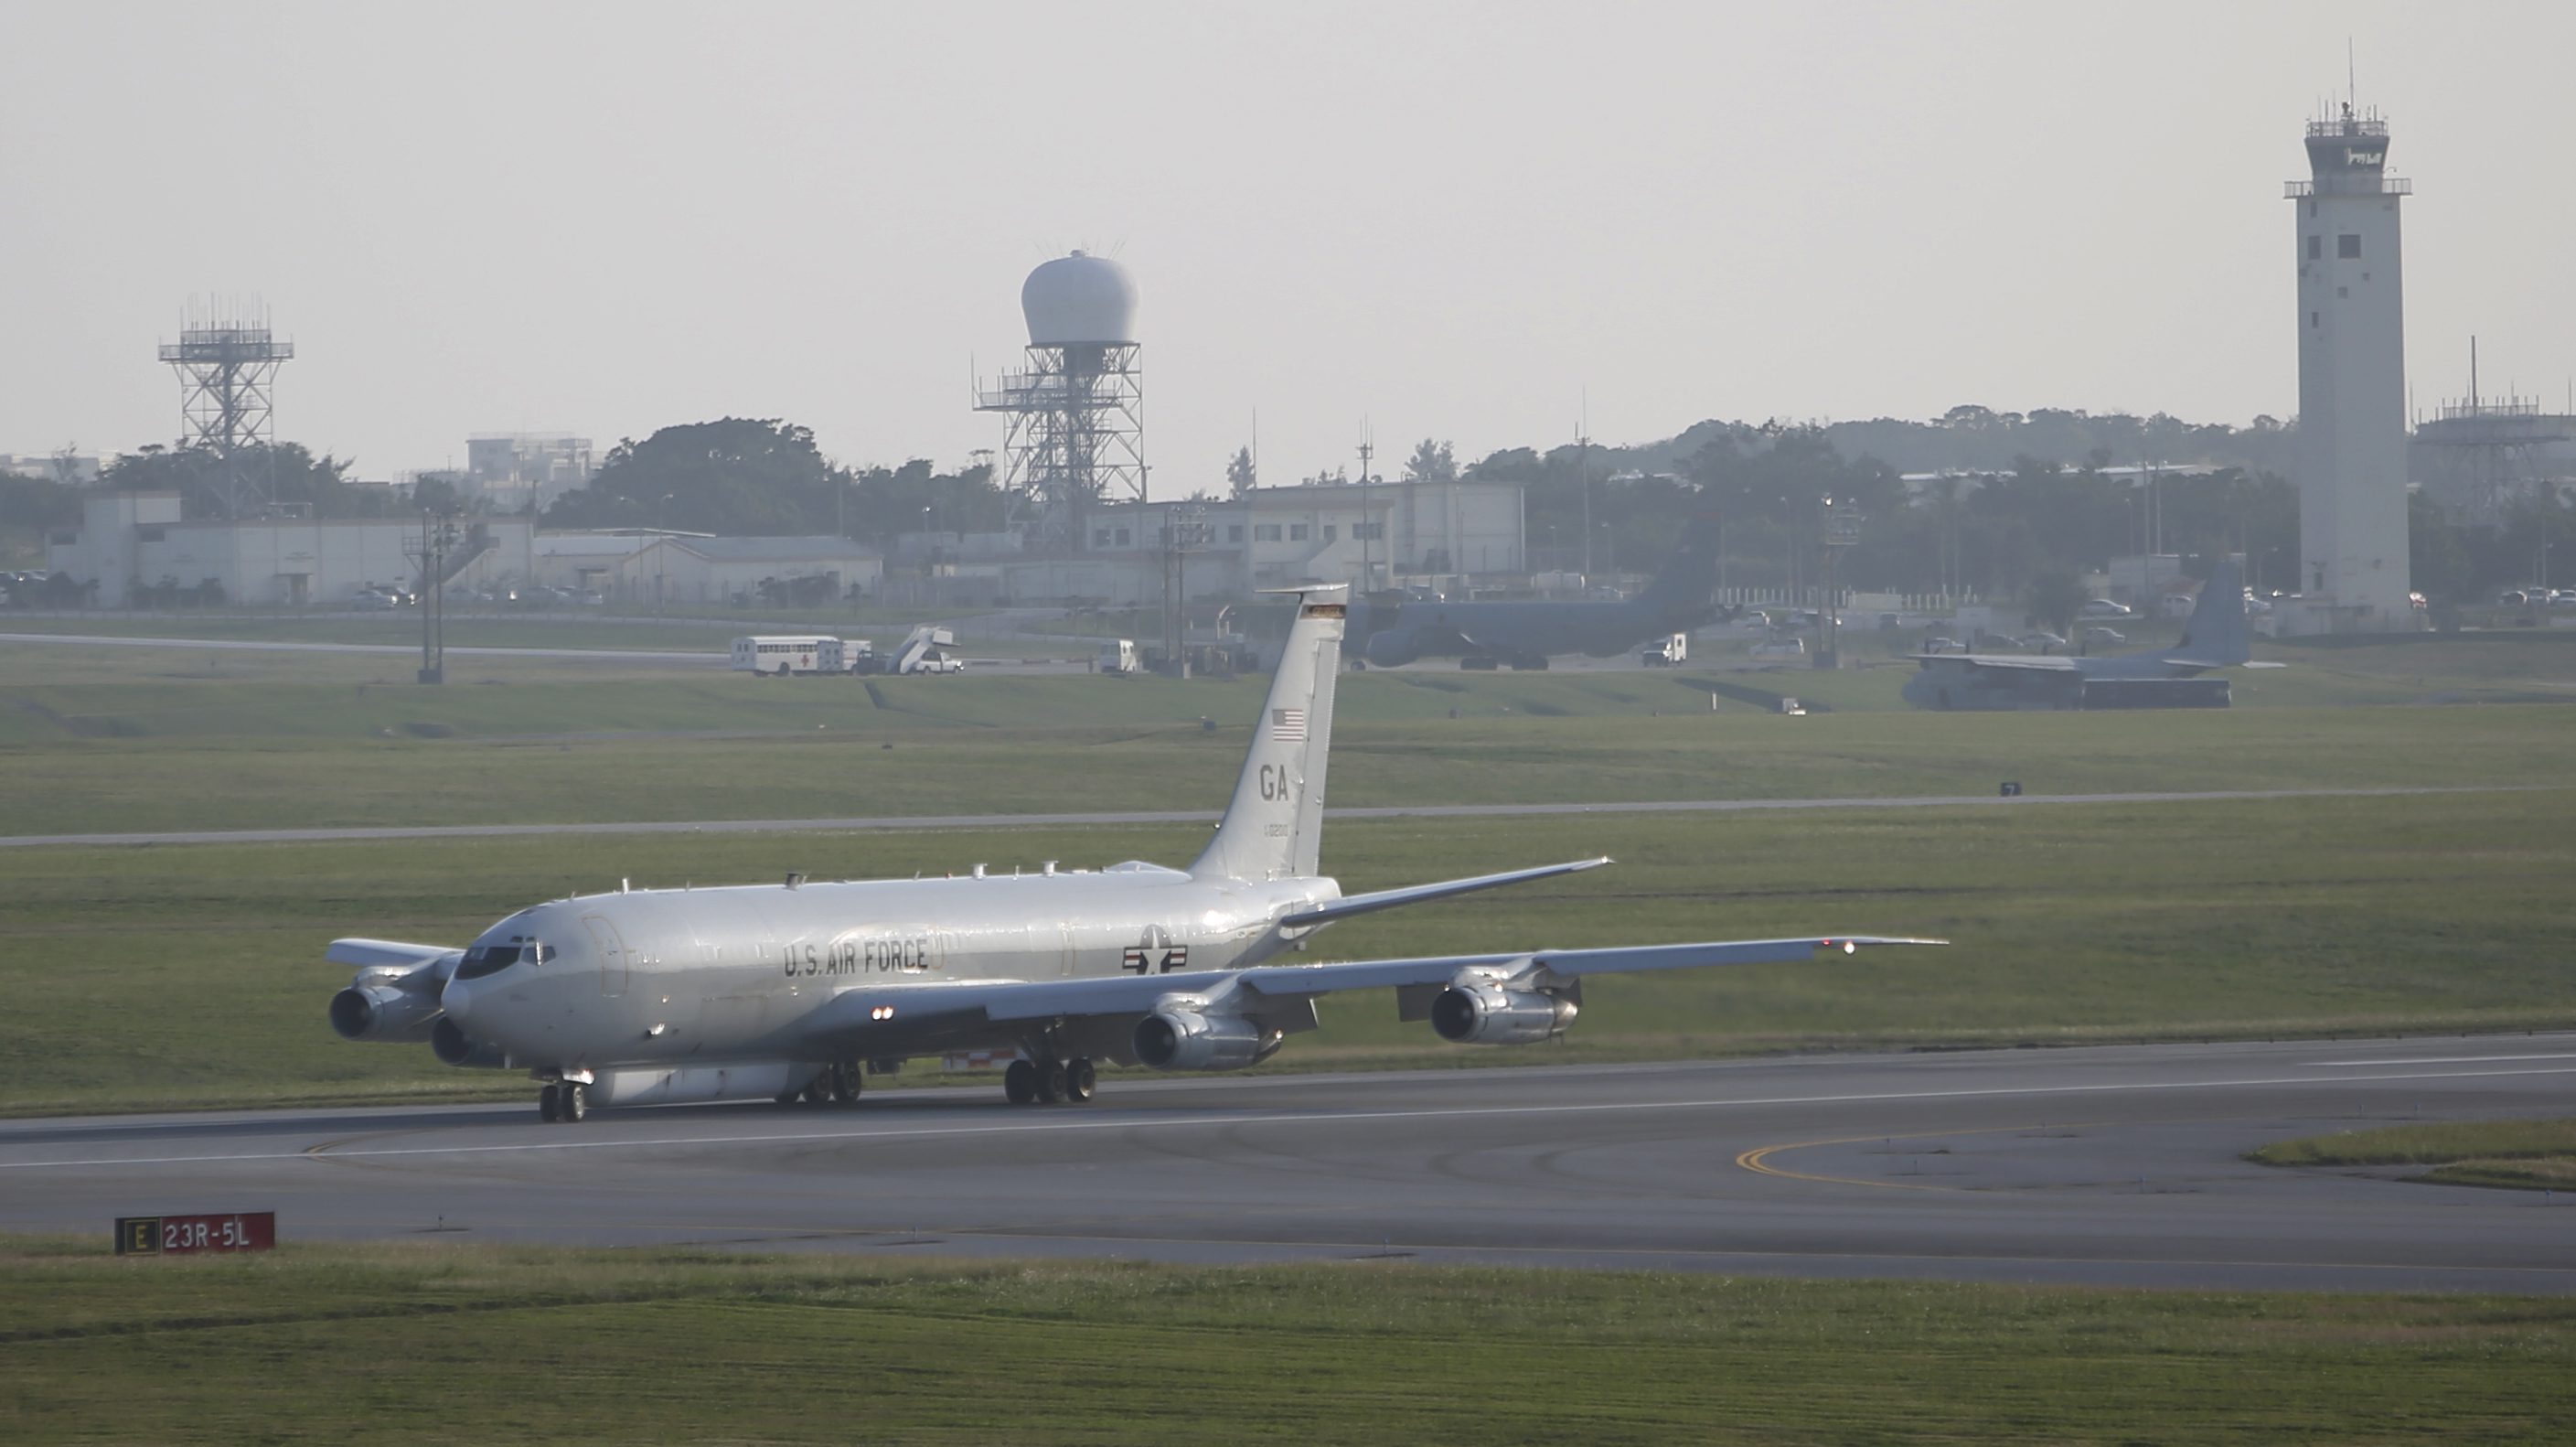 A U.S. Air Force E-8C Joint Surveillance Target Attack Radar System (STARS) returns to Kadena Air Base in Okinawa, southwestern Japan, Thursday, Jan. 7, 2016. North Korea said Wednesday it had conducted a hydrogen bomb test, a defiant and surprising move that, if confirmed, would put Pyongyang a big step closer toward improving its still-limited nuclear arsenal. (AP Photo/Koji Ueda)